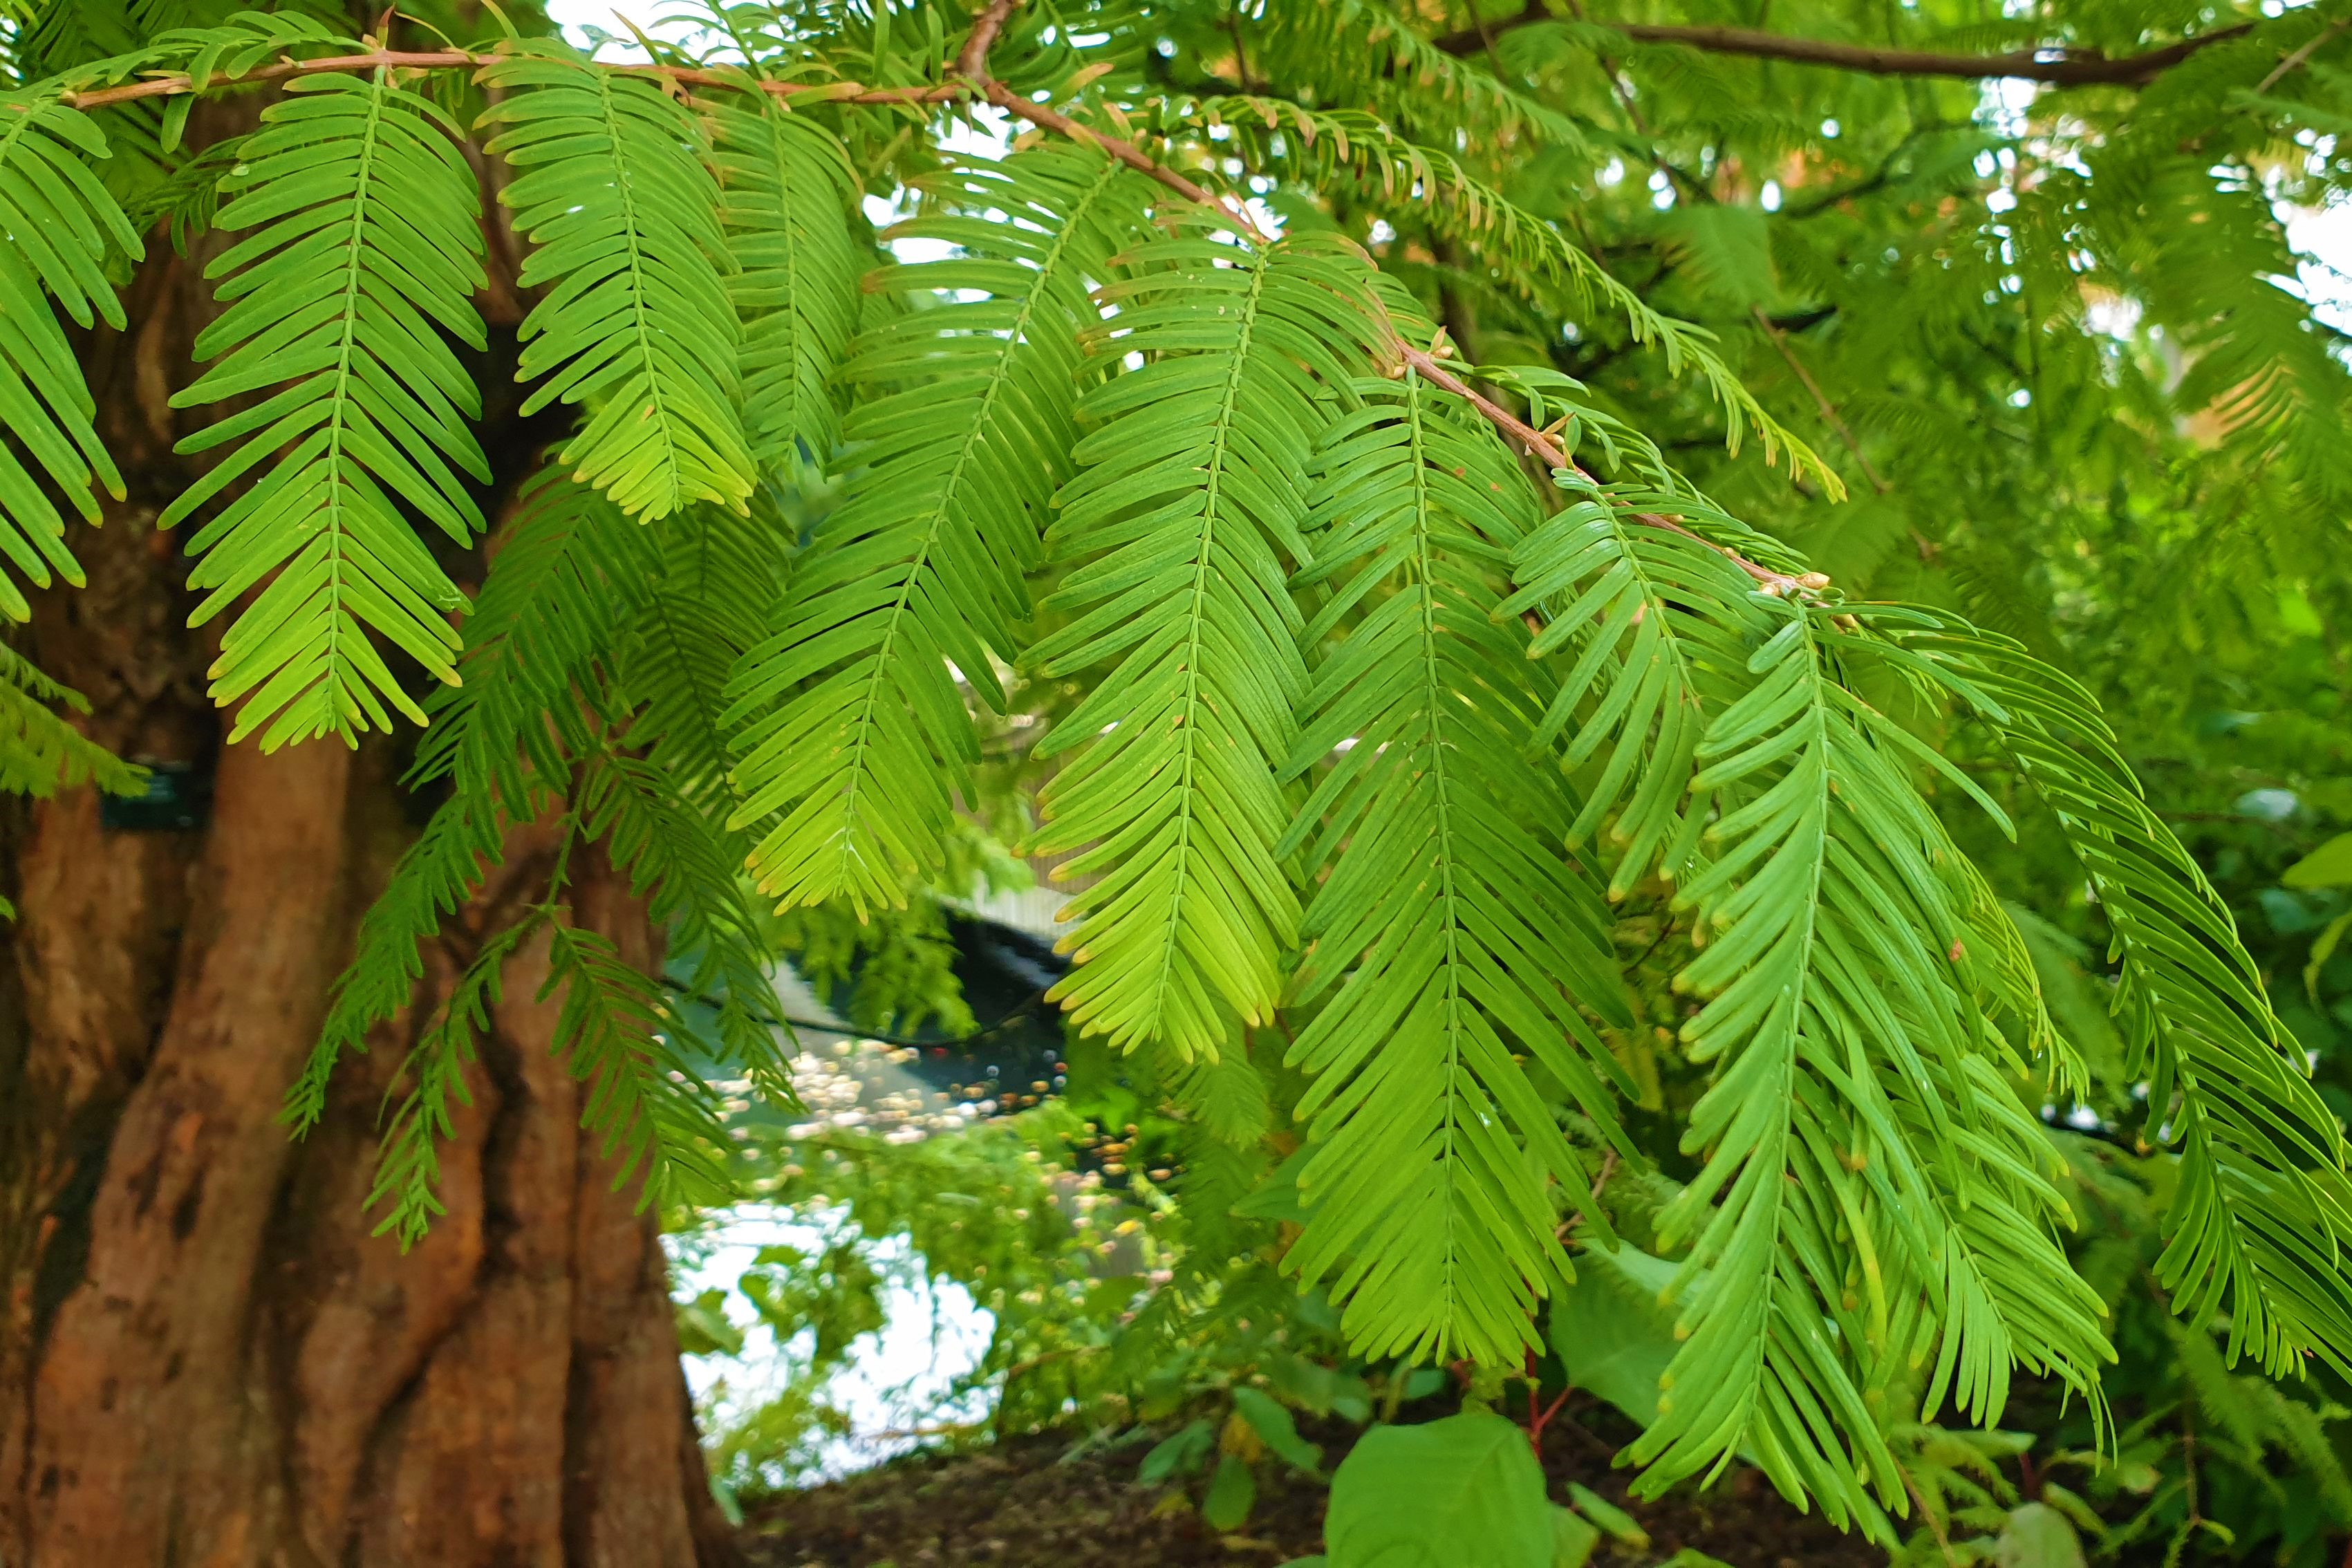 Close up of dawn redwood (Metasequoia glyptostroboides) leaves